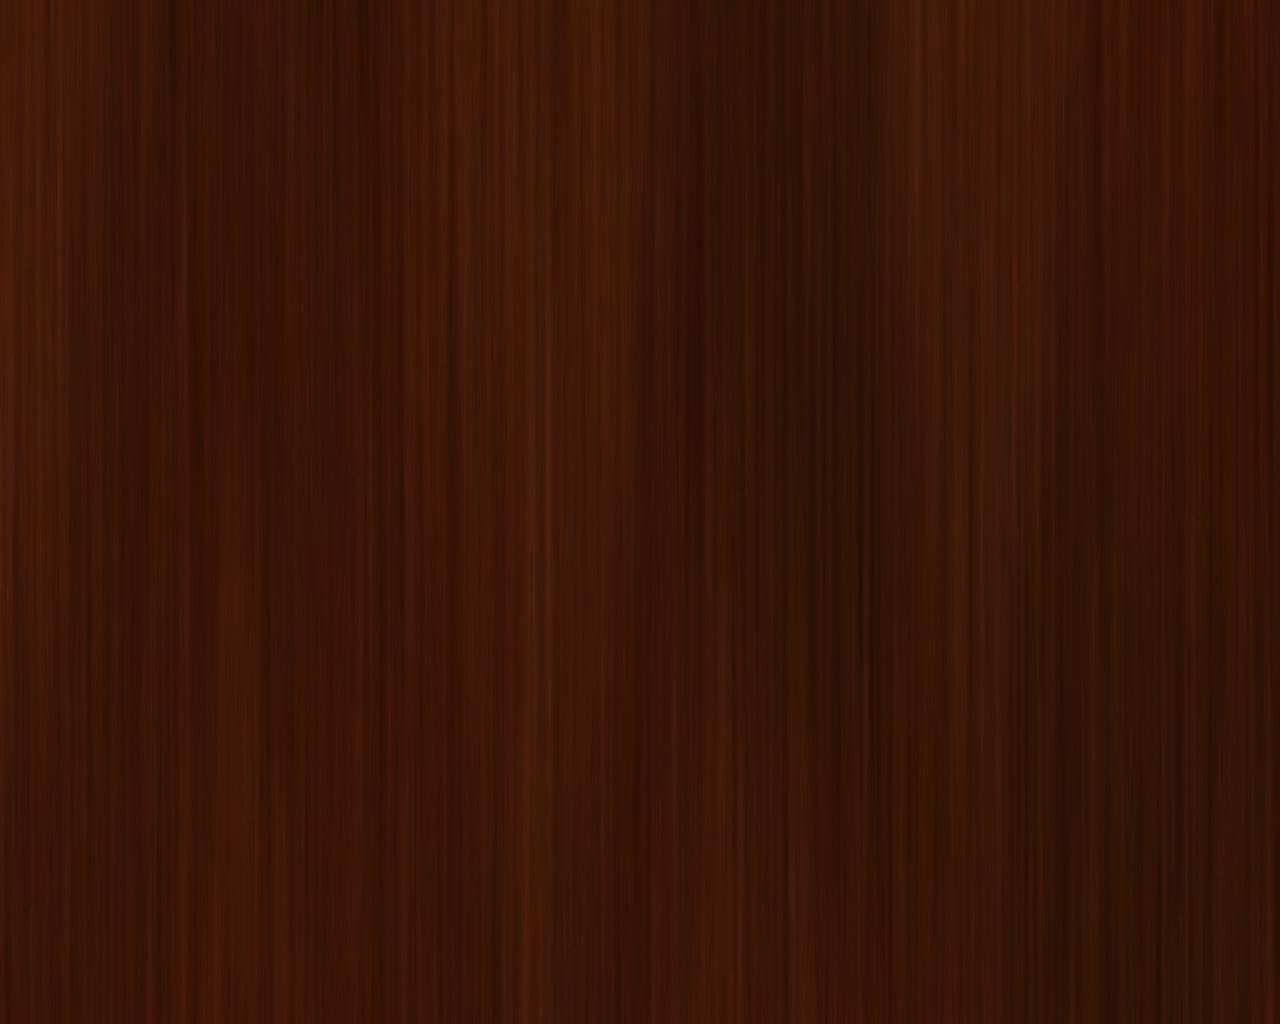 background_wood